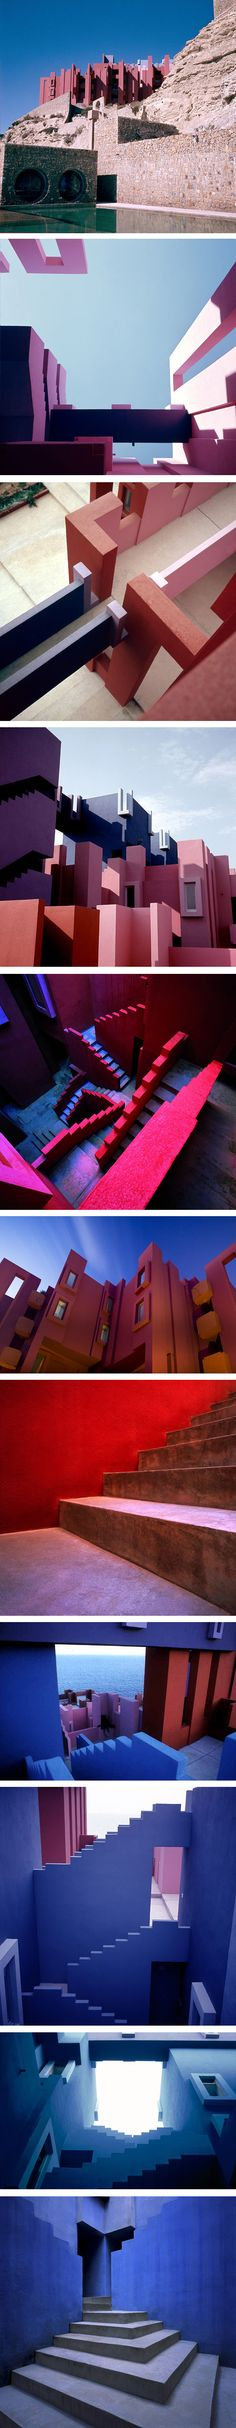 """The Red Wall"" (La Muralla Roja) 50 apartment building by Ricardo Bofill in Calp, Spain.dated de Route de Valencia Architecture Design, Futuristic Architecture, Amazing Architecture, Contemporary Architecture, Design Set, Urban Design, Espace Design, Red Walls, Built Environment"